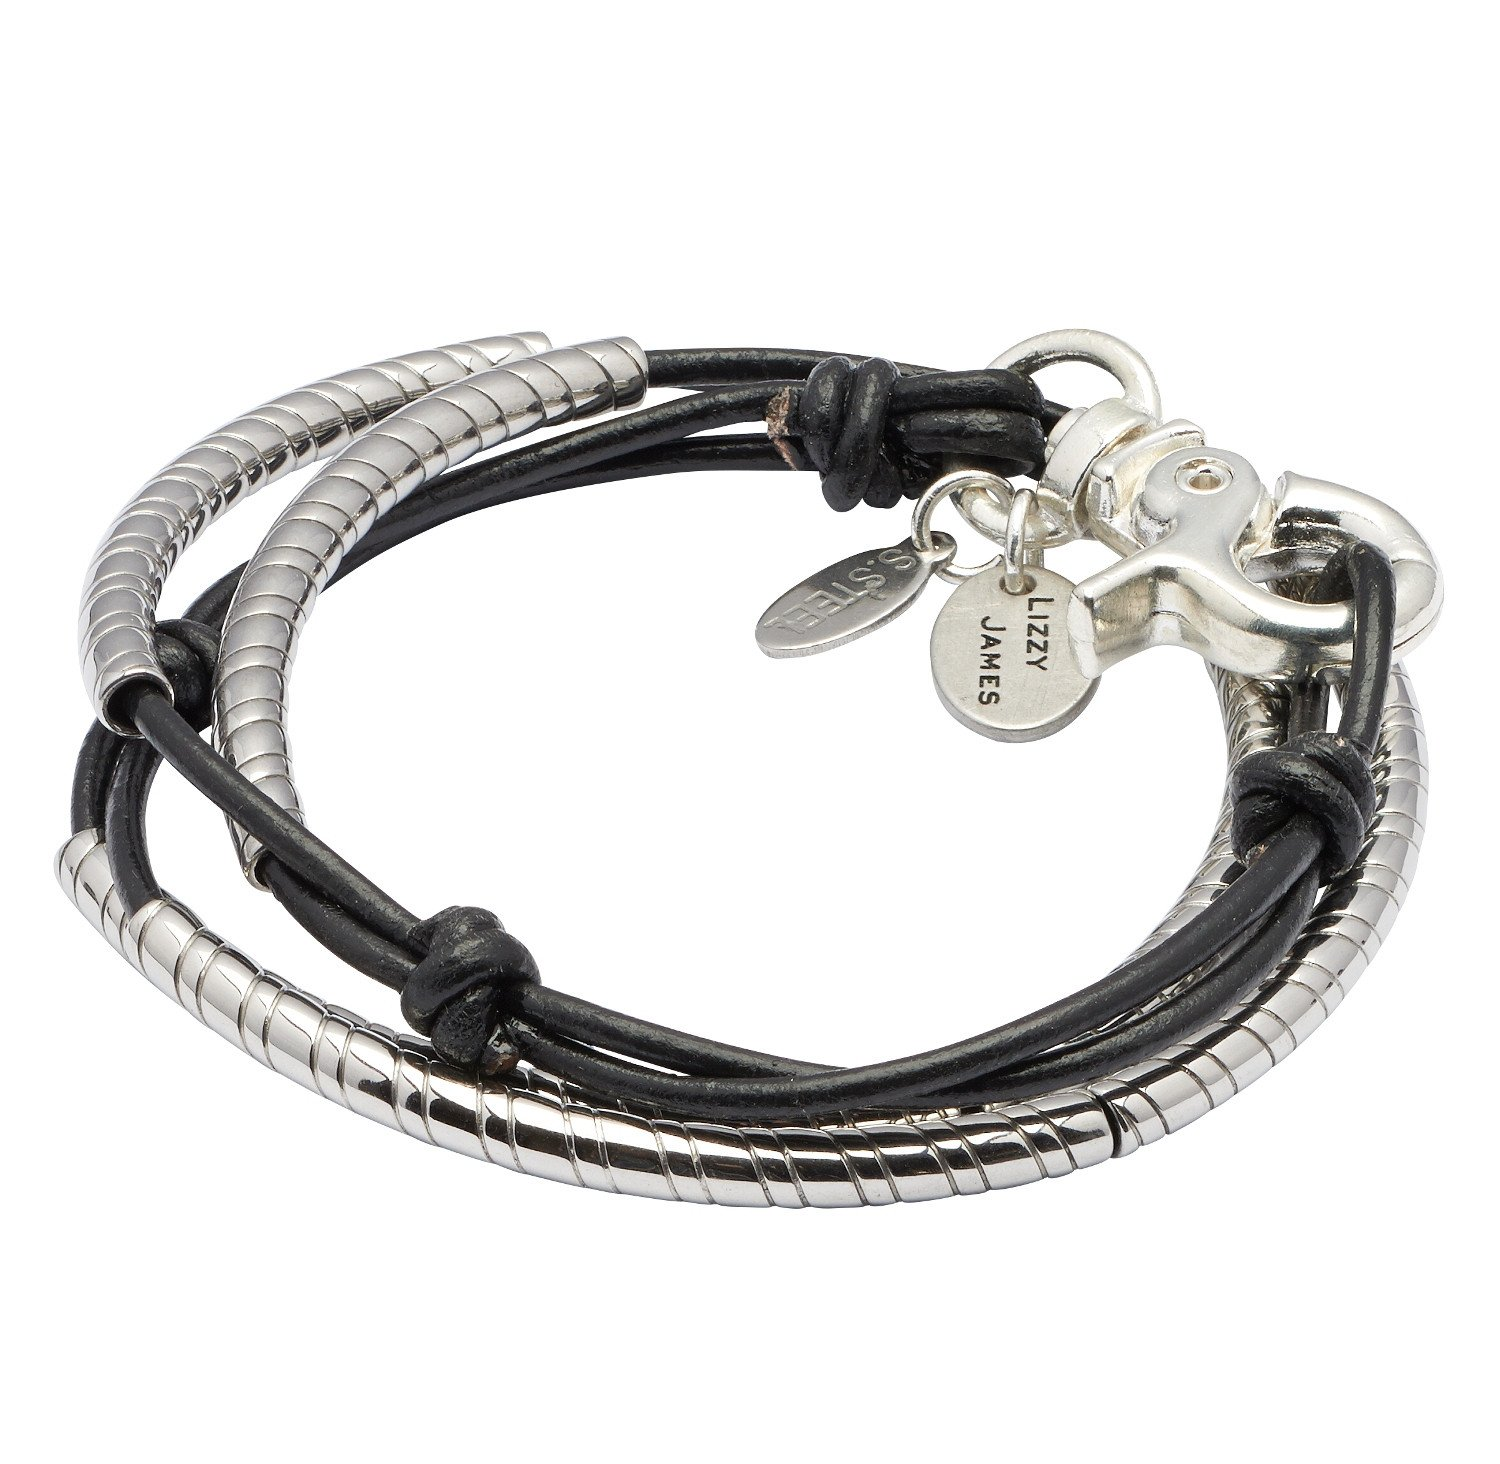 Mini Lasso 2 Strand Stainless Steel Small Bracelet With Natural Black Leather by Lizzy James